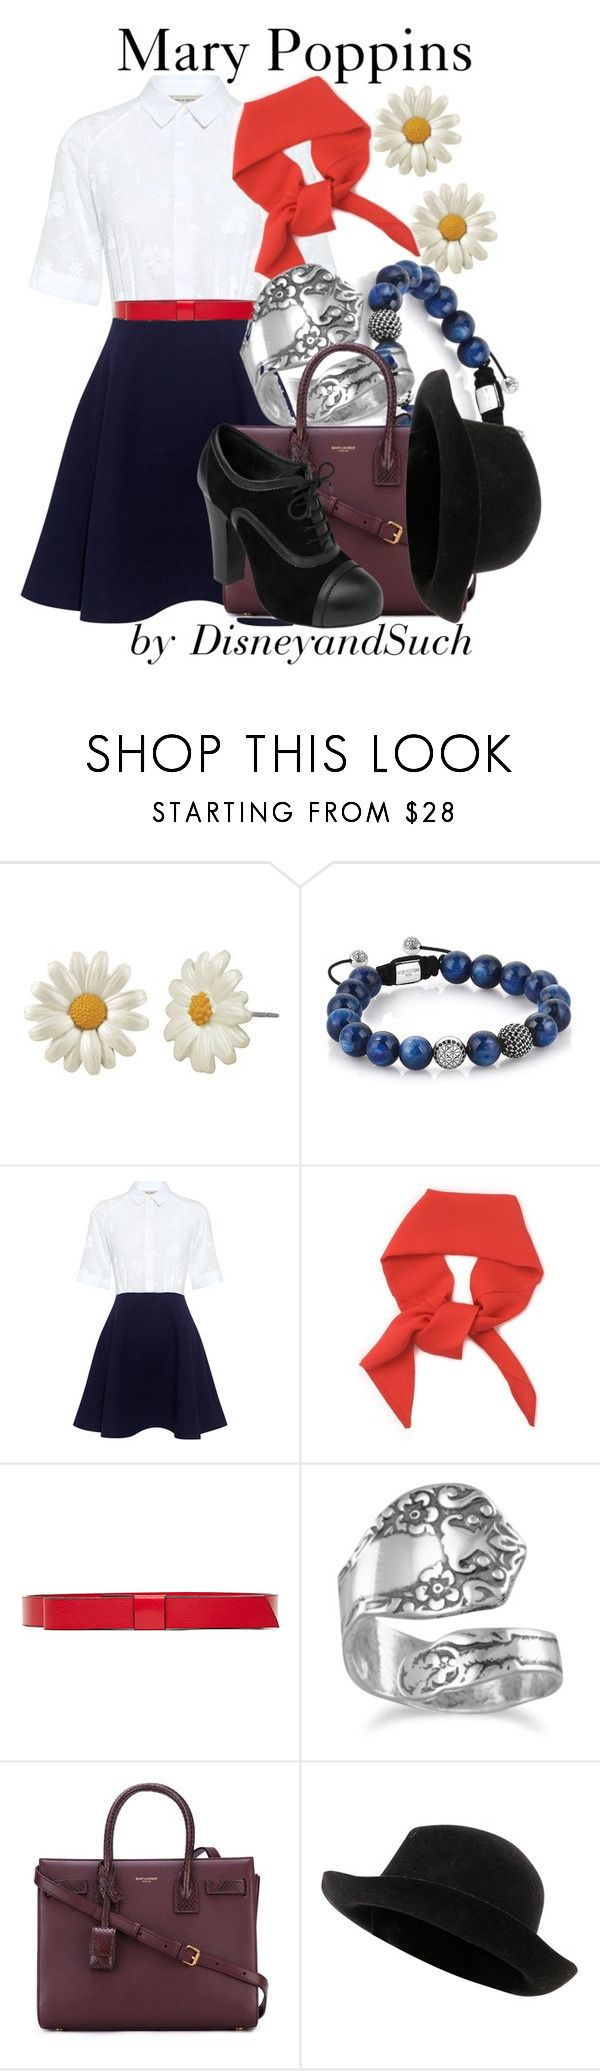 """""""Mary Poppins"""" by disneyandsuch ❤ liked on Polyvore featuring Paul & Joe Sister, Marni, BillyTheTree, Yves Saint Laurent, Chanel, disney, disneybound, marypoppins and WhereIsMySuperSuit"""